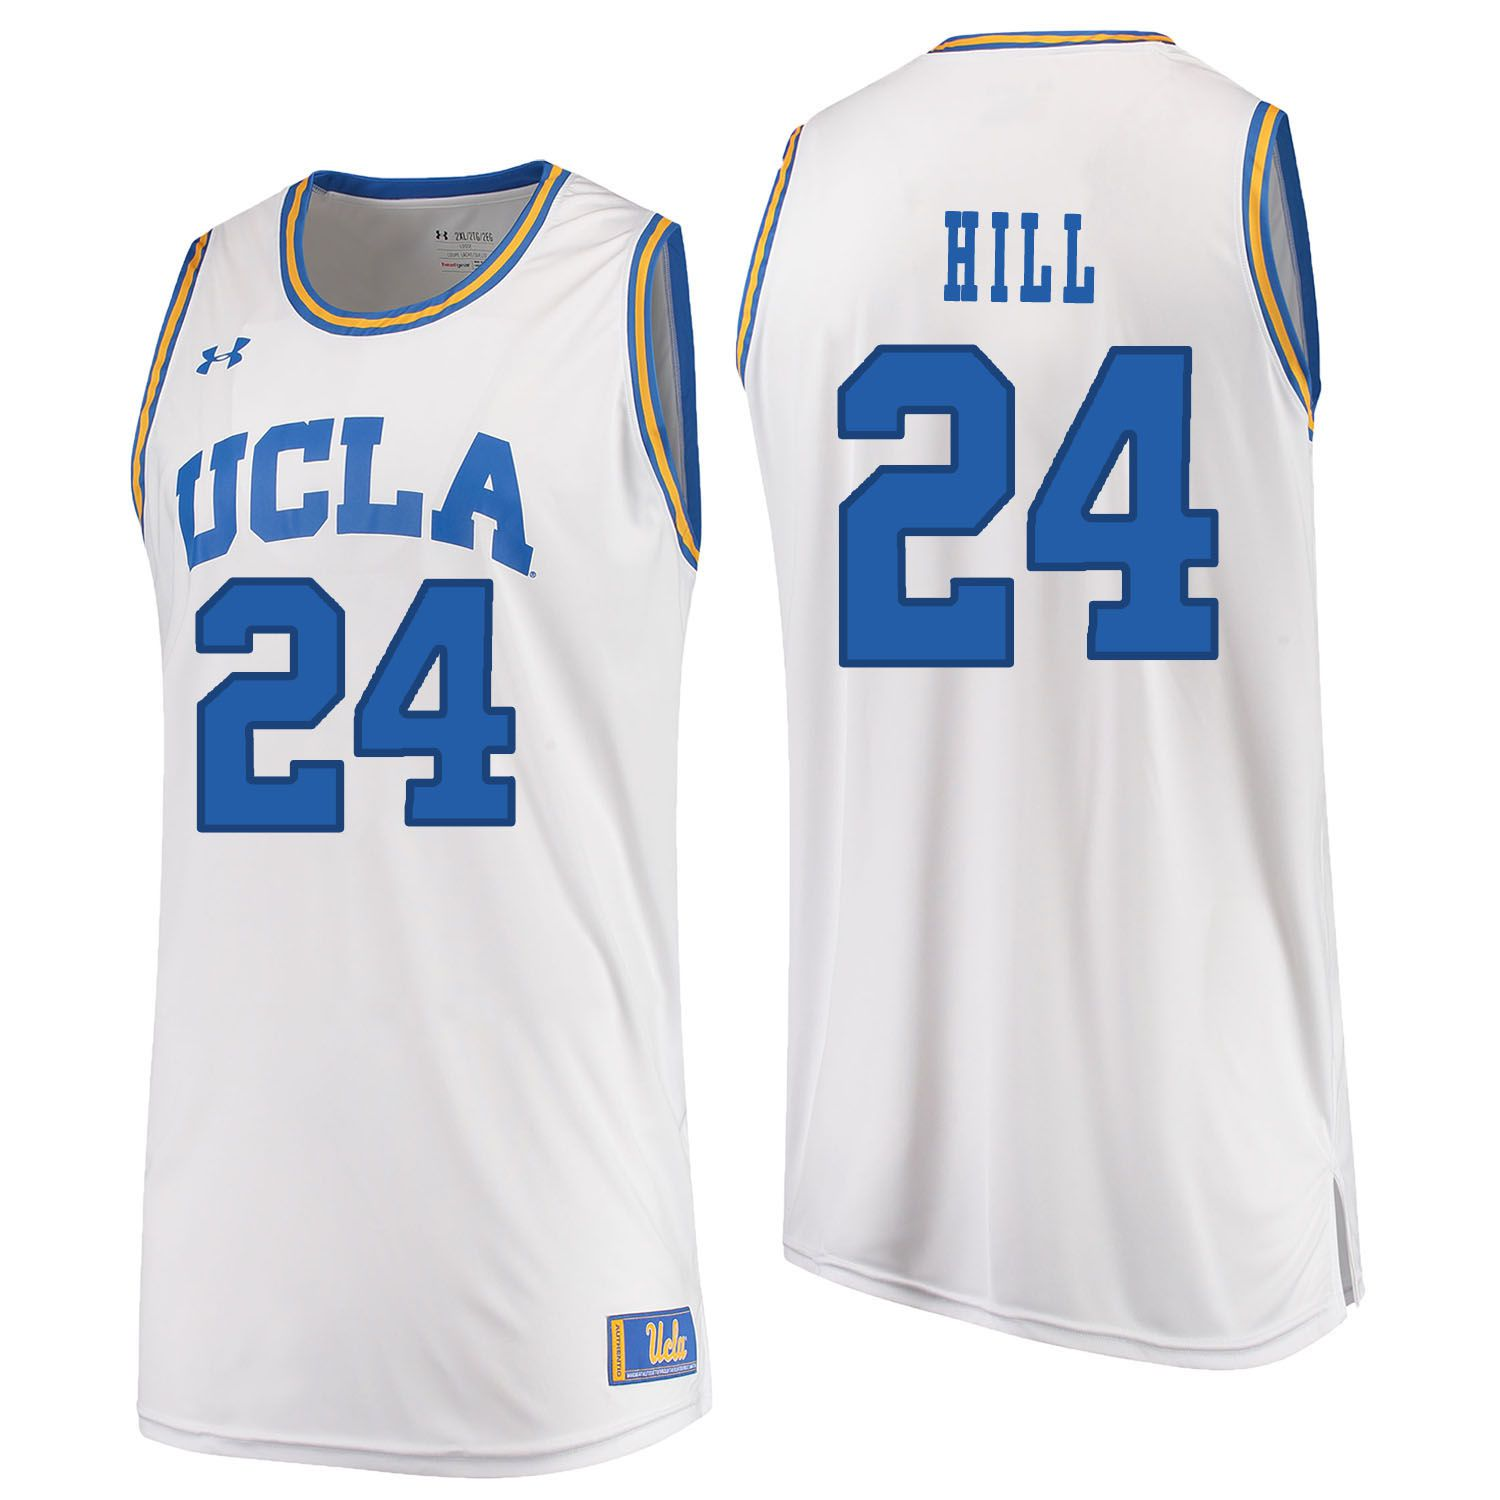 Men UCLA UA 24 Hill White Customized NCAA Jerseys